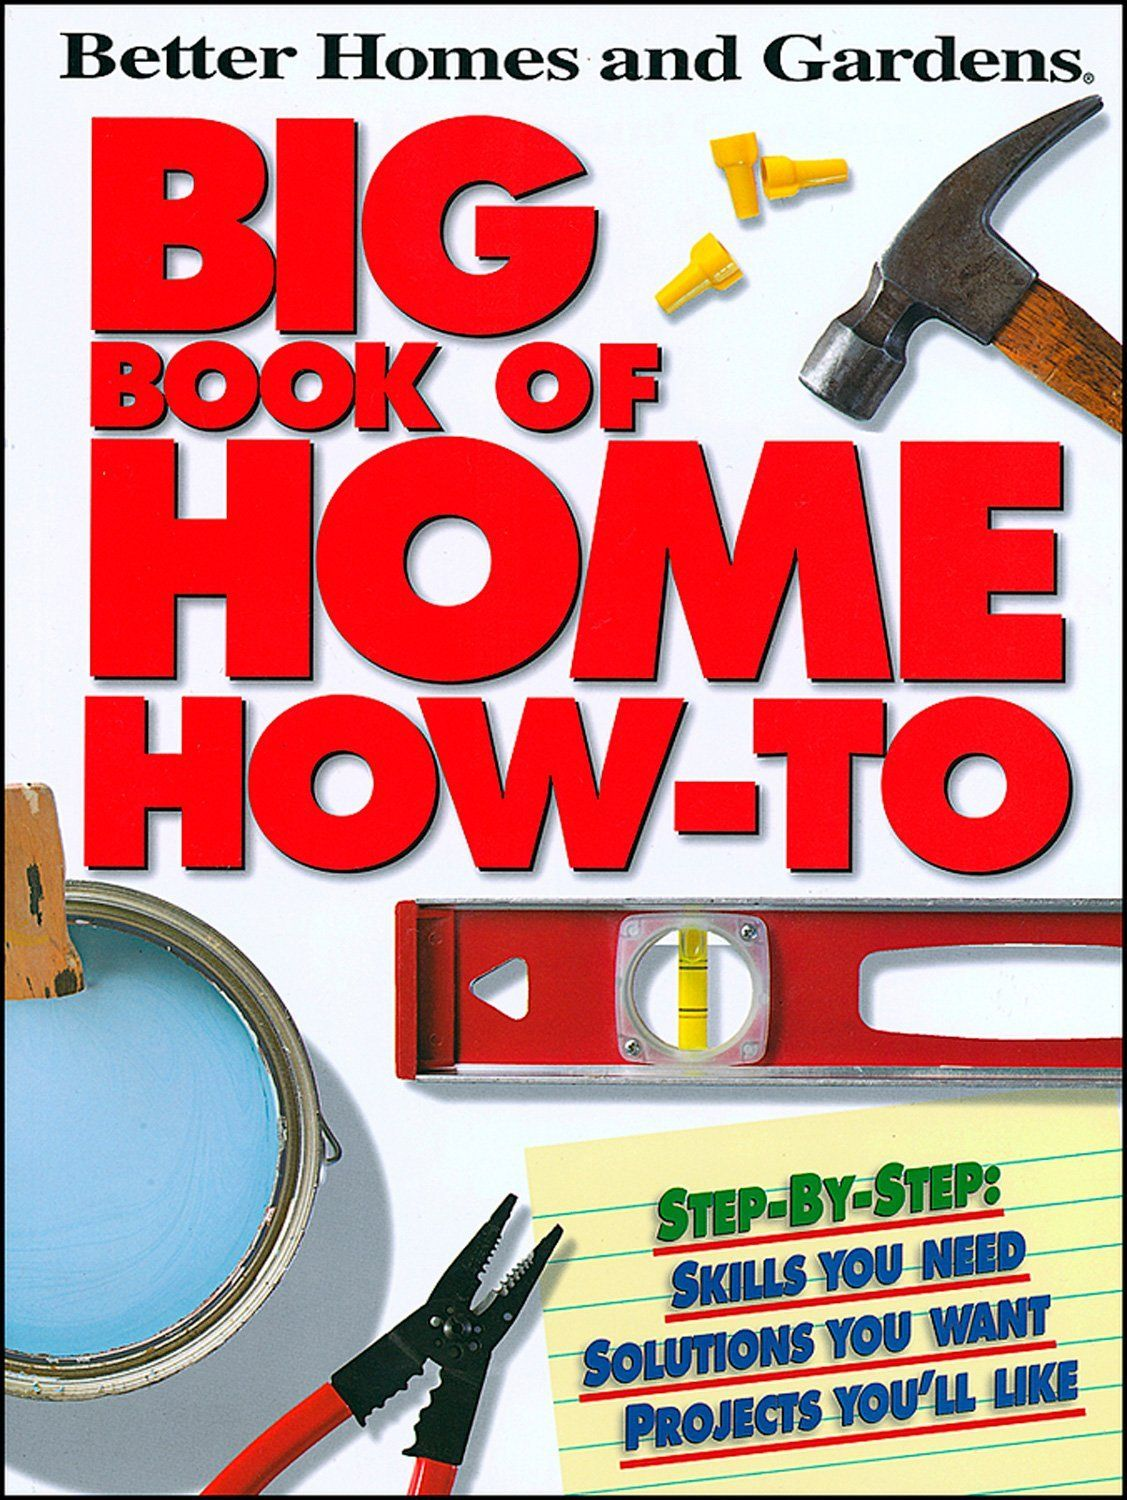 Big book of home how to p better homes and gardens better homes big book of home how to p better homes and gardens better homes gardens do it yourself product description must have resource and incredibl solutioingenieria Image collections